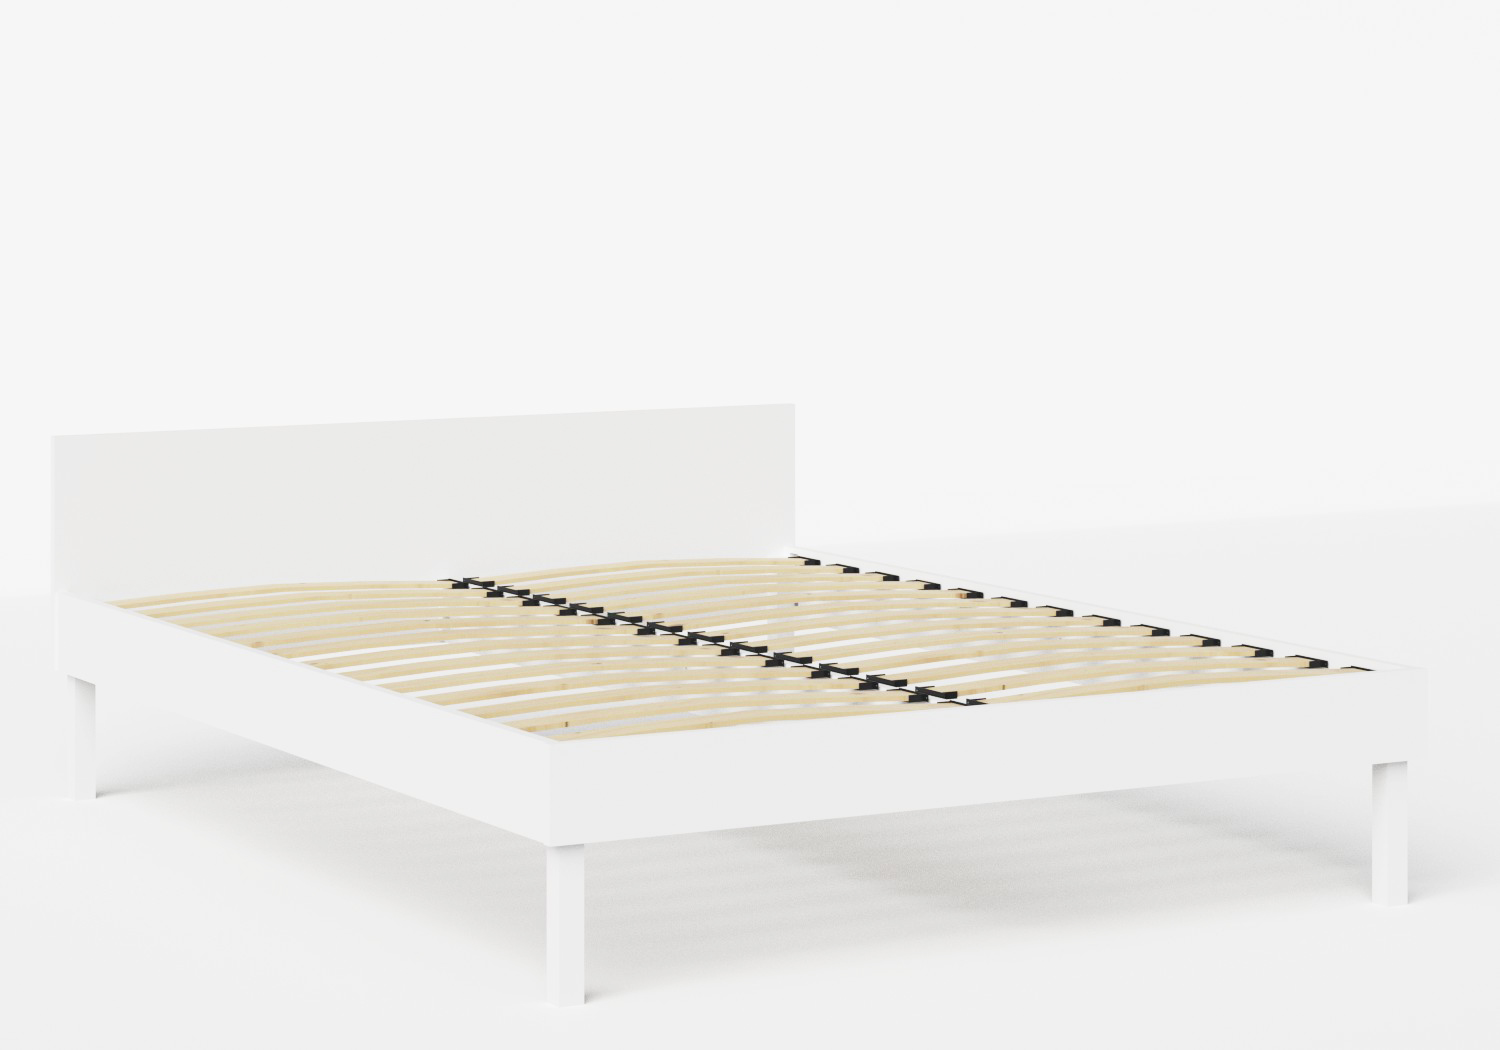 Fuji Wood Bed in White shown with slatted frame